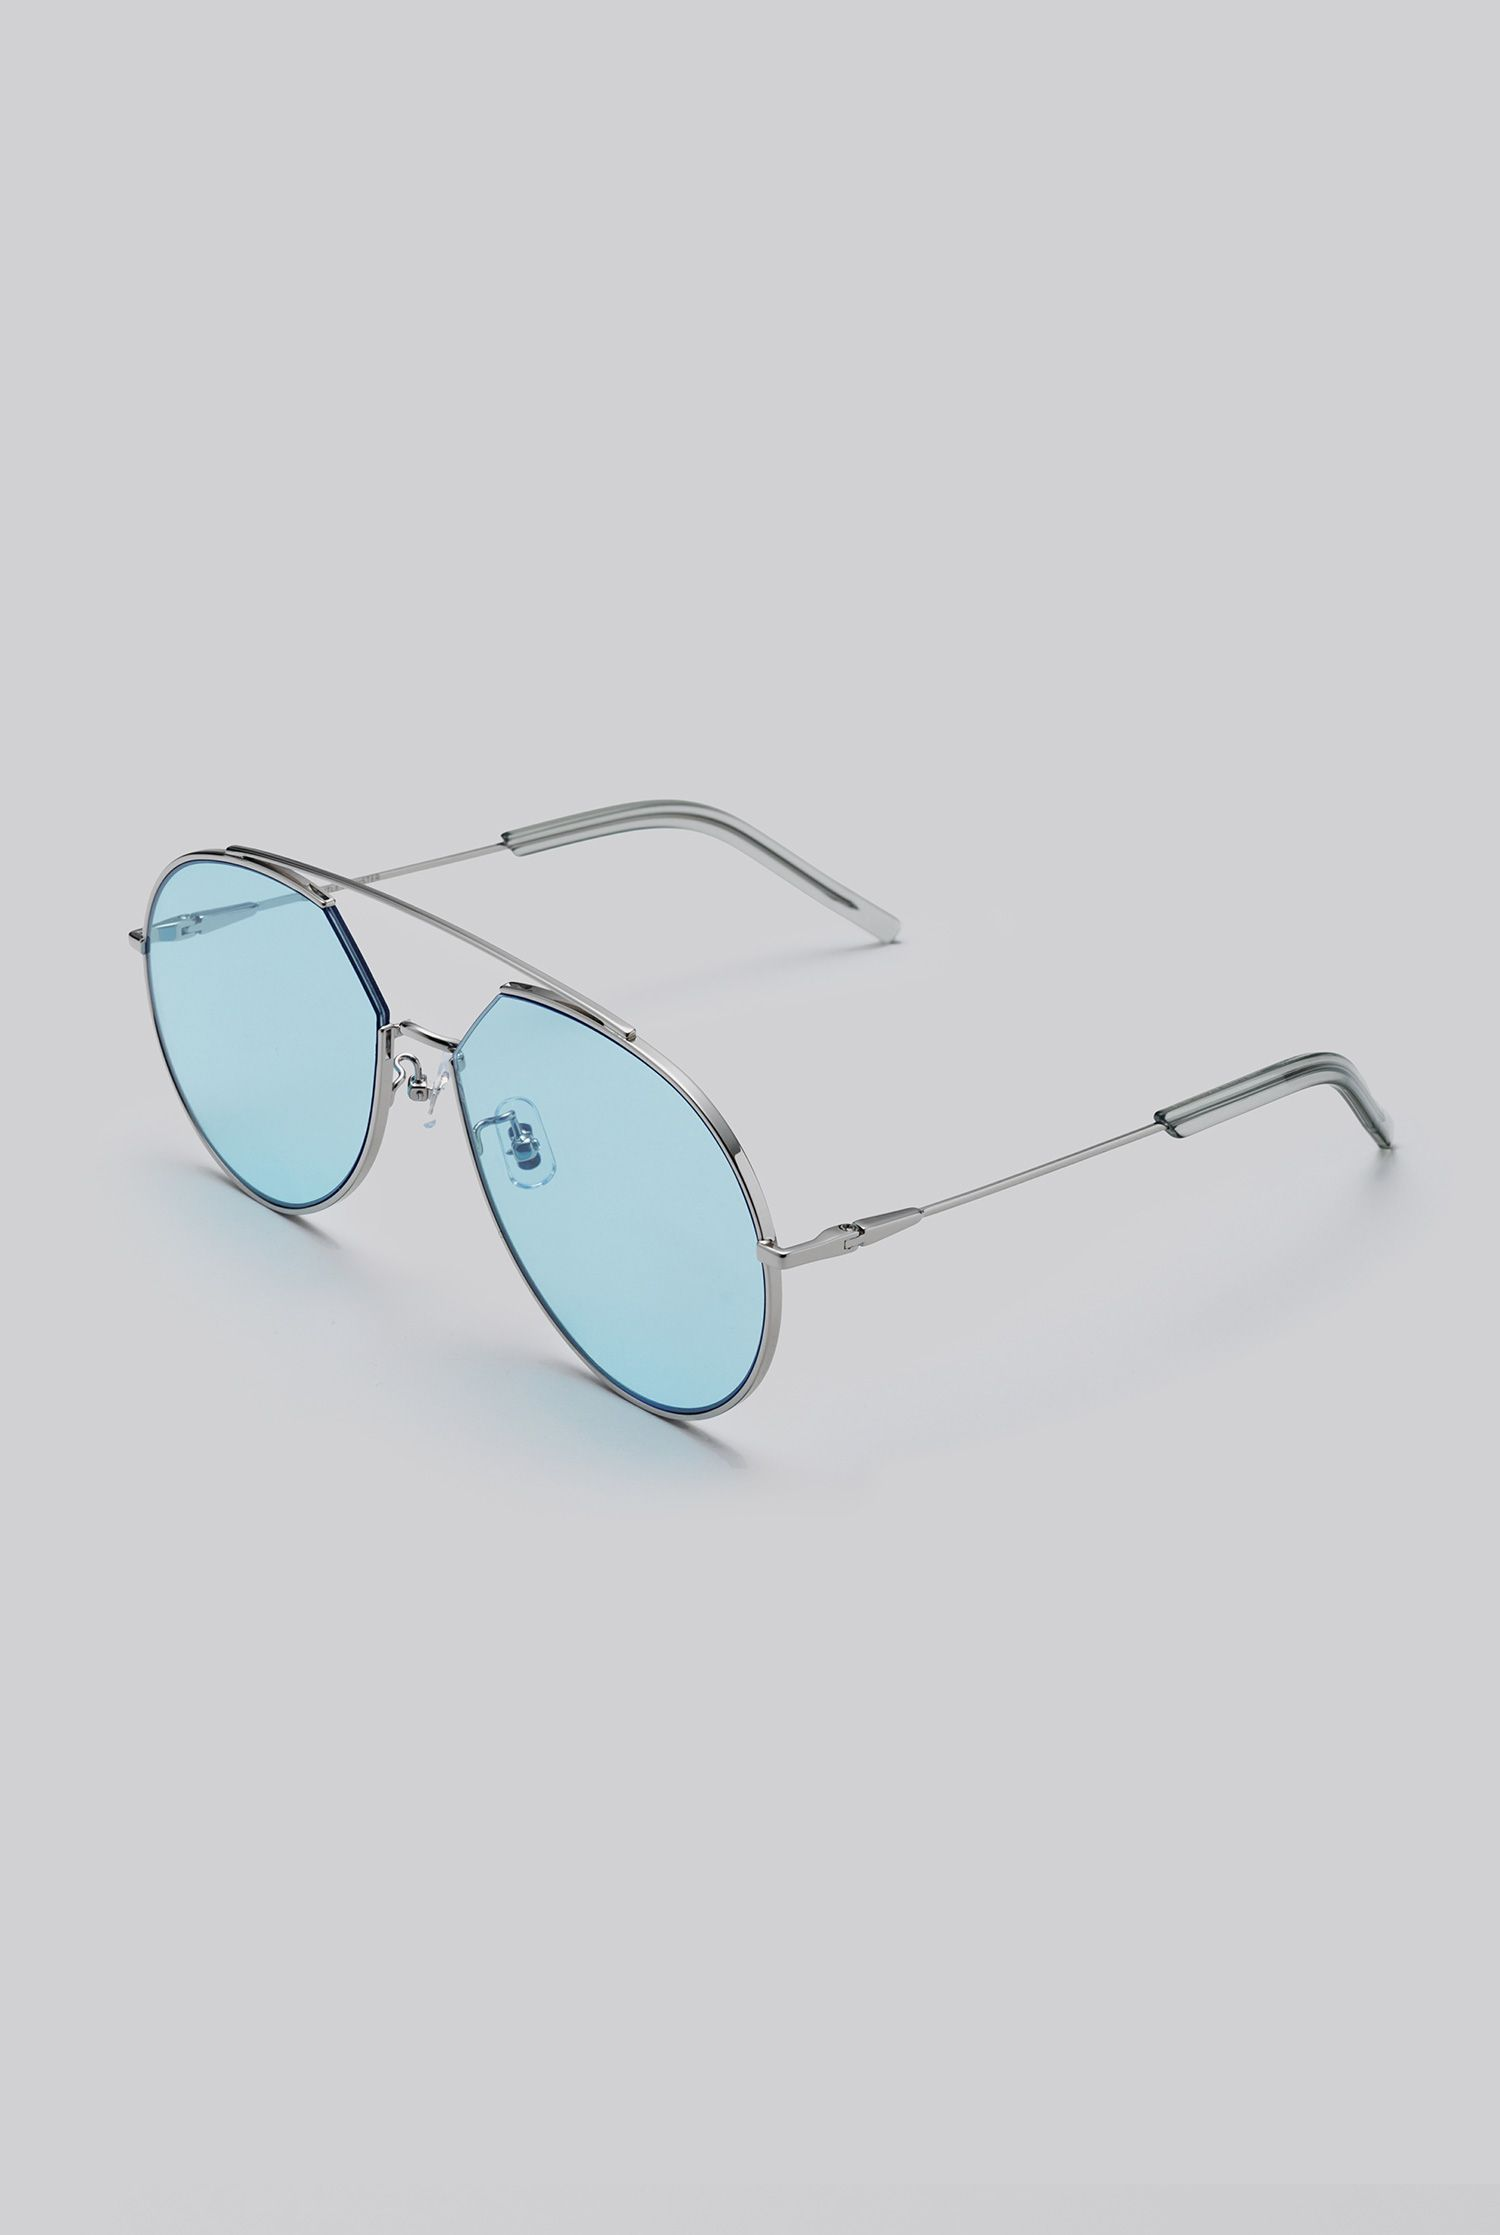 297b700a56 GENTLE MONSTER 2018 Sunglasses Z-1 02(B) Stainless steel front and Stainless